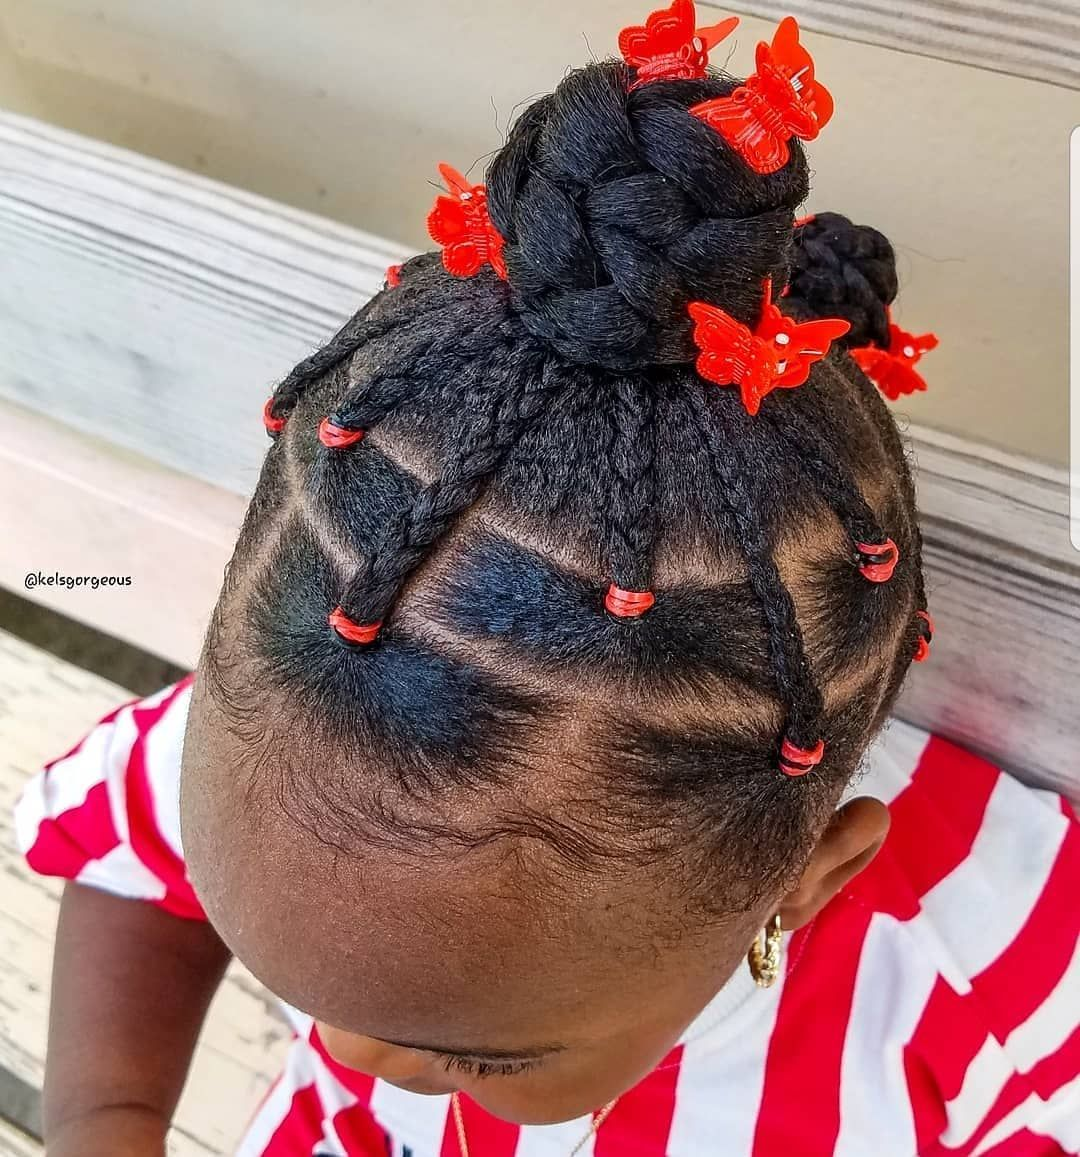 "#kidshairstyles #kidsbraids on Instagram: ""FEATURED @kelsgorgeous FOLLOW @kissegirl💋Beauty Brand💋Hair, Skin, & Nails . . .  #browngirlshair #cutekidsbraids #braidsfordays #braidsgang…"""